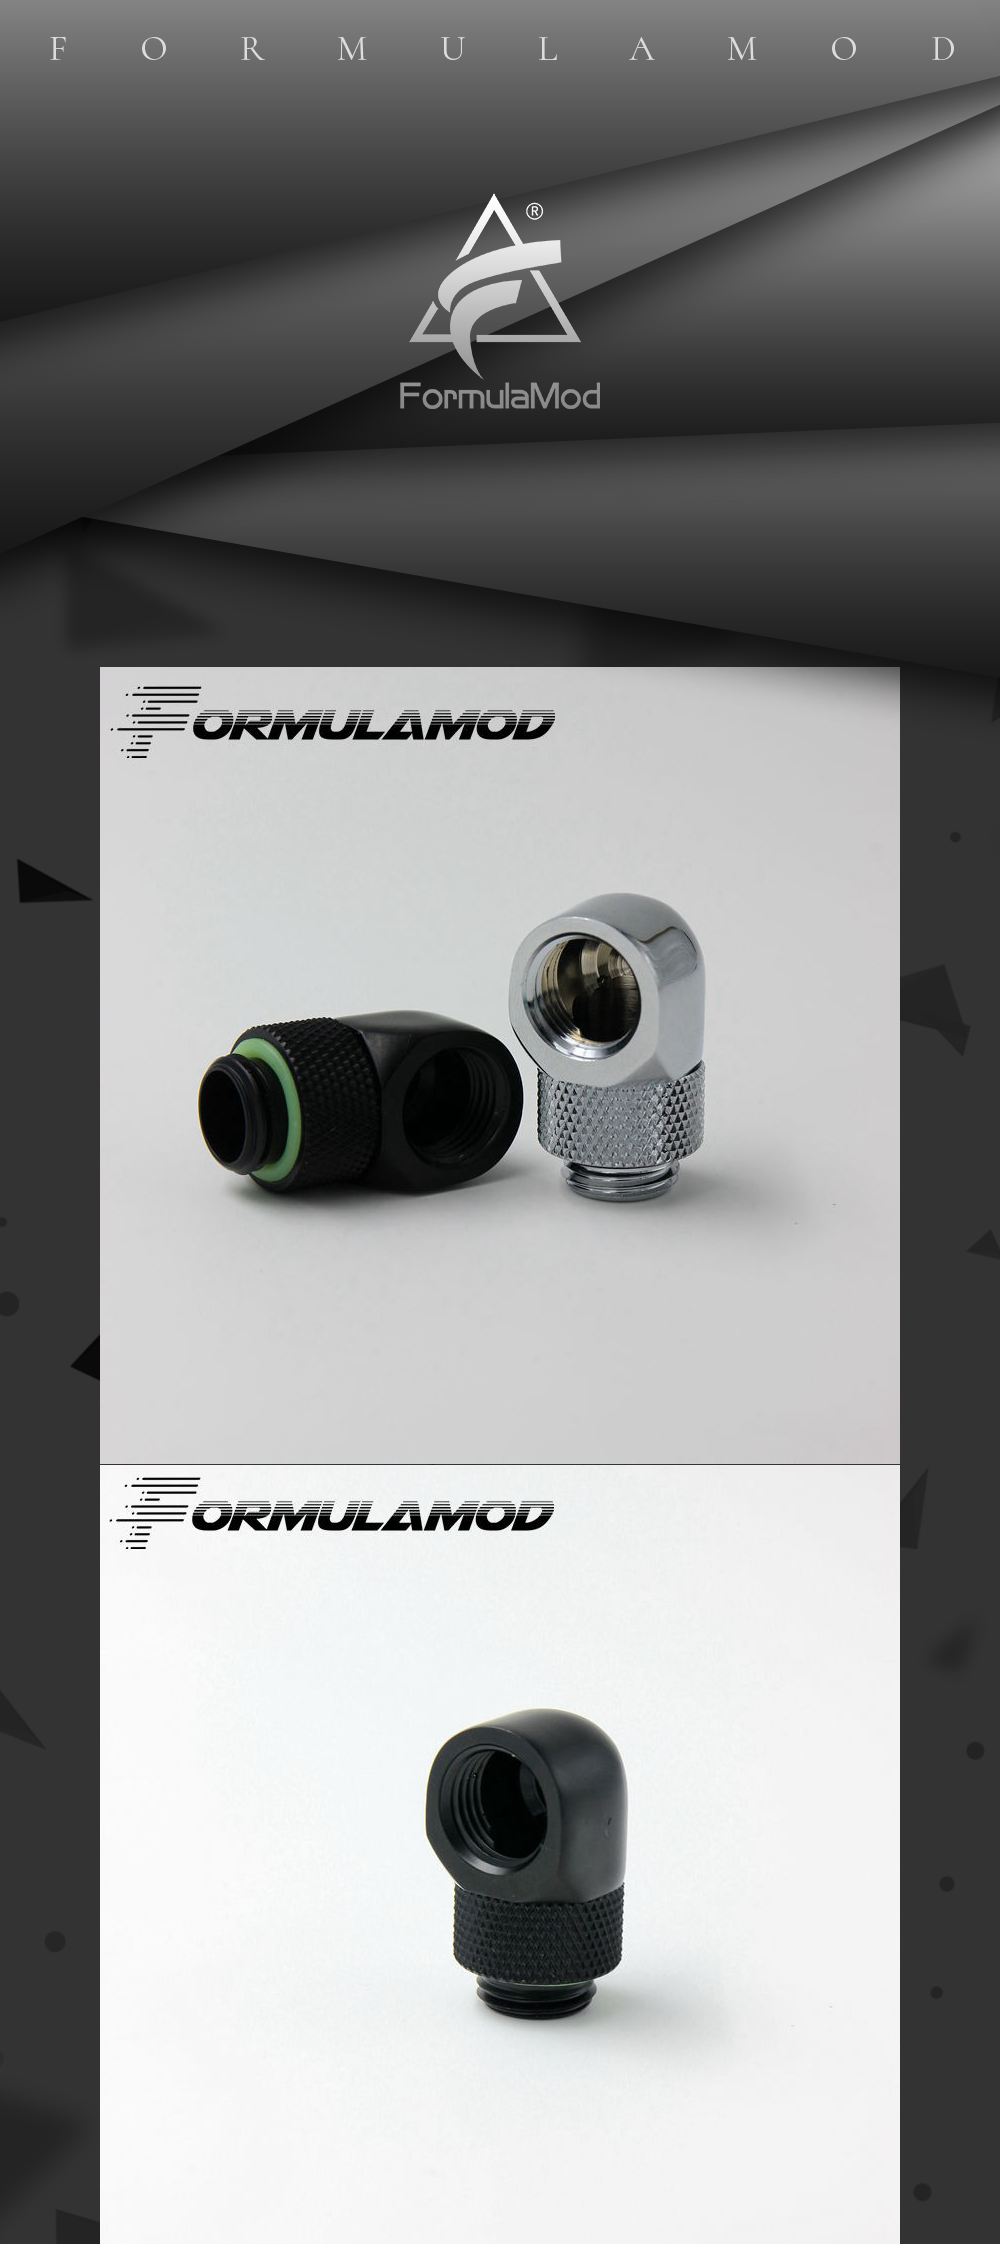 FormulaMod Fm-90DX, Black Silver G1/4'' thread 90 degree Rotary Fitting Adapter Rotating 90 degrees water cooling Adaptors